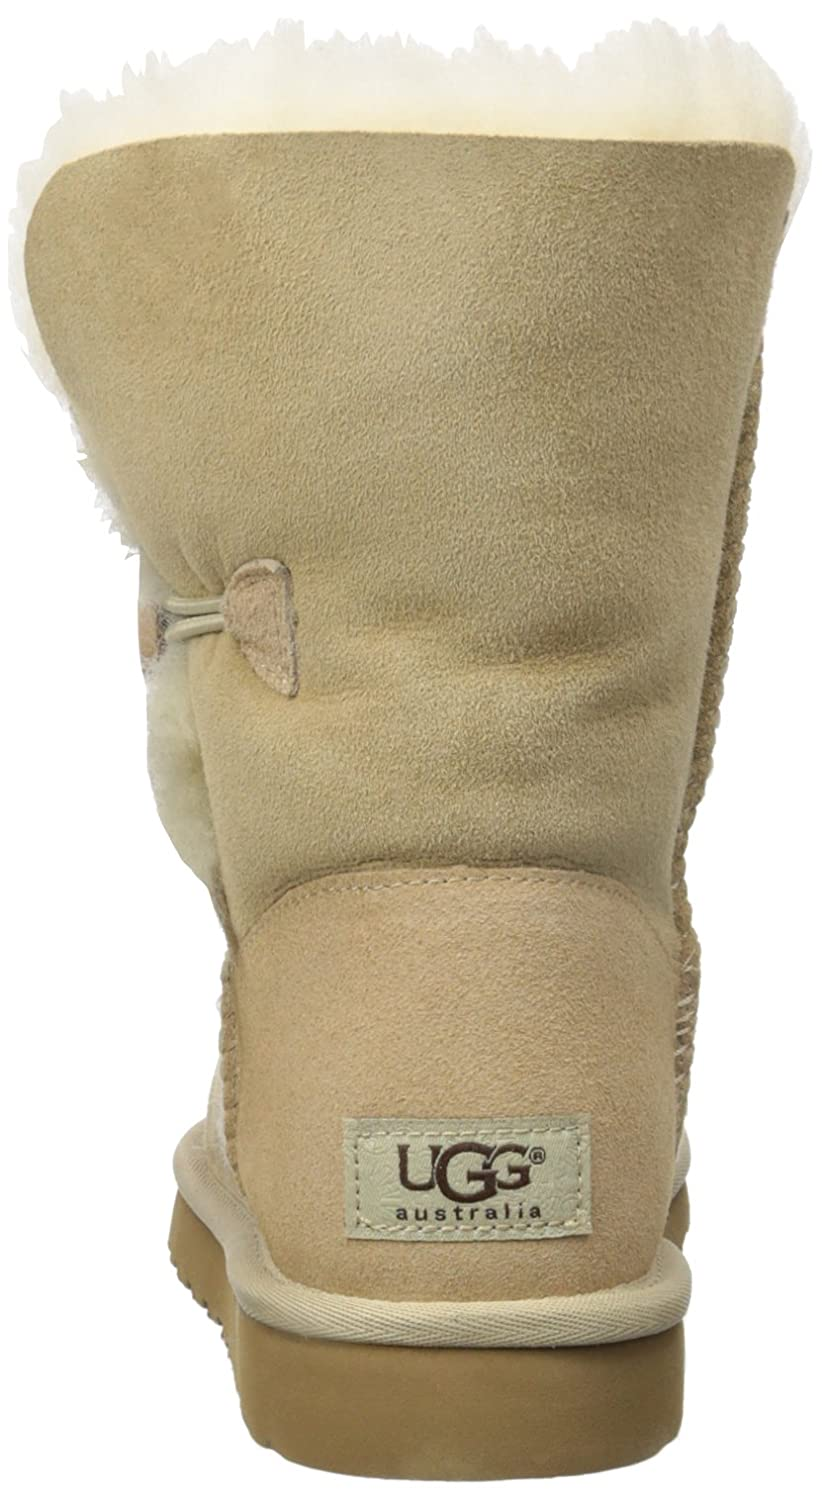 ugg 2 button boots